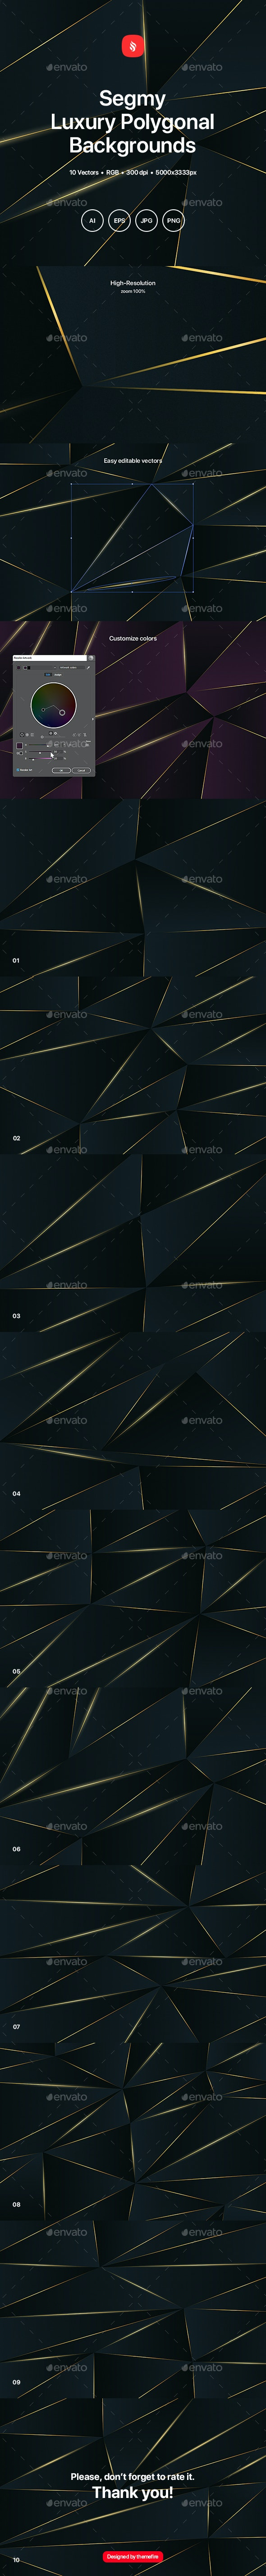 Segmy - Luxury Polygonal Backgrounds - Abstract Backgrounds